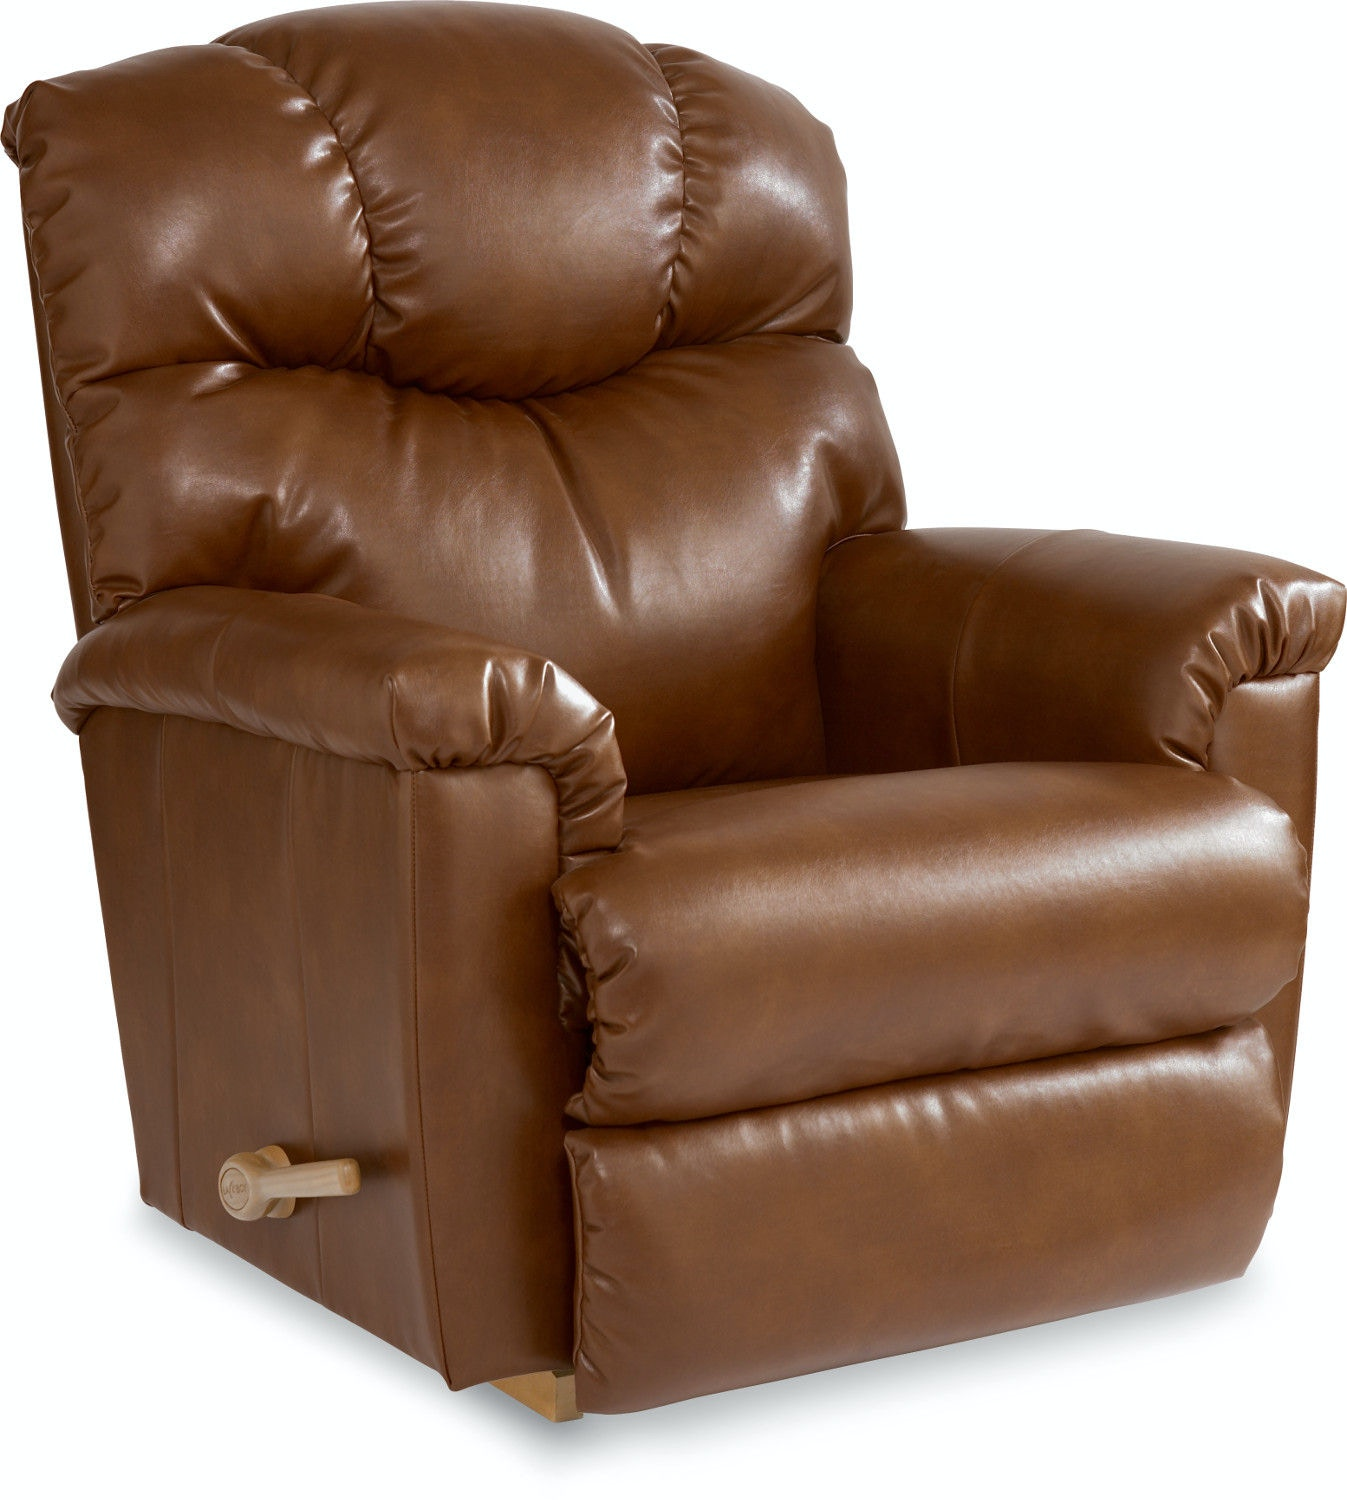 Zoom  sc 1 st  Hickory Furniture Mart & La-Z-Boy Living Room RECLINA-ROCKER® Recliner 010515 | Hickory ... islam-shia.org